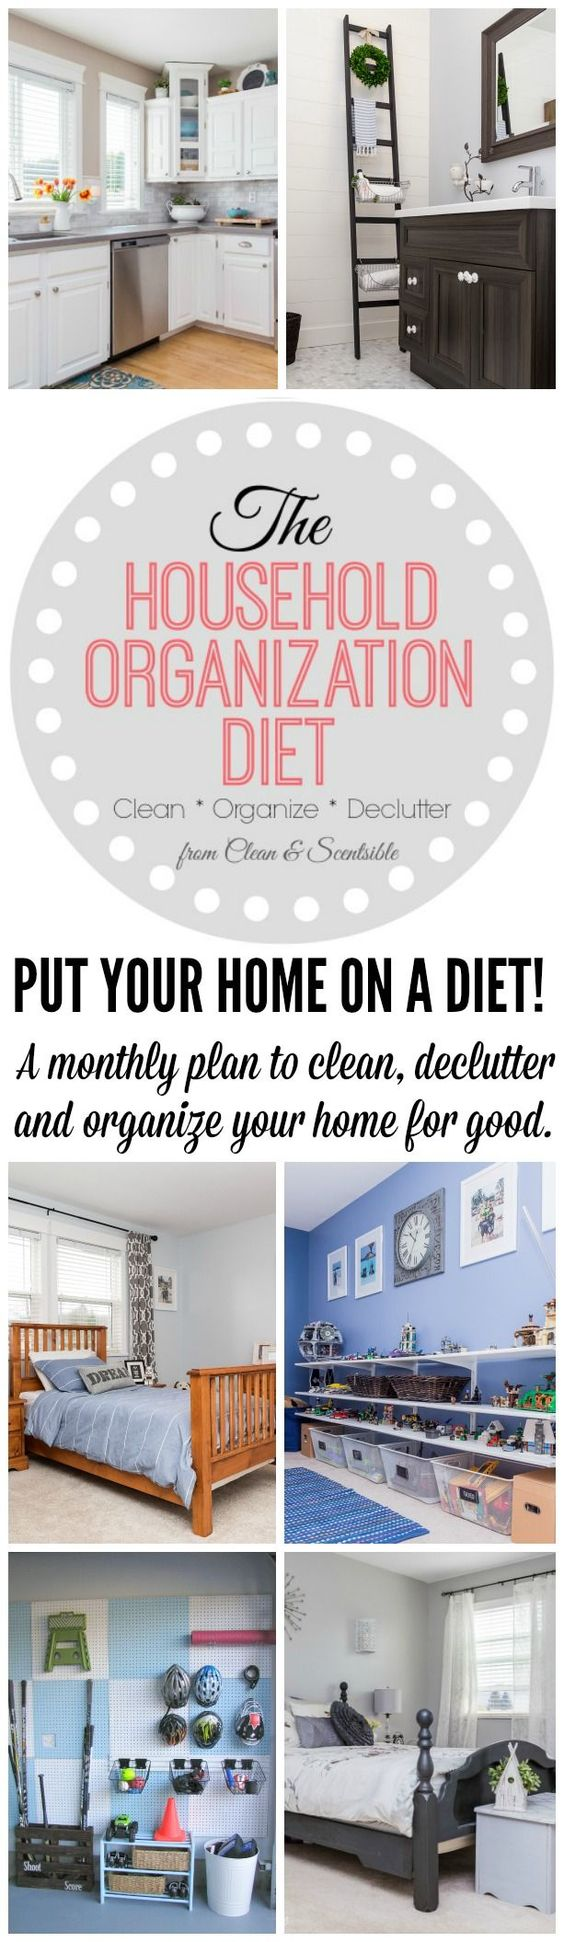 Join in this year long plan to completely declutter, deep clean, and organize your home once and for all! Free monthly printables and tons of inspiration to help keep you on track!